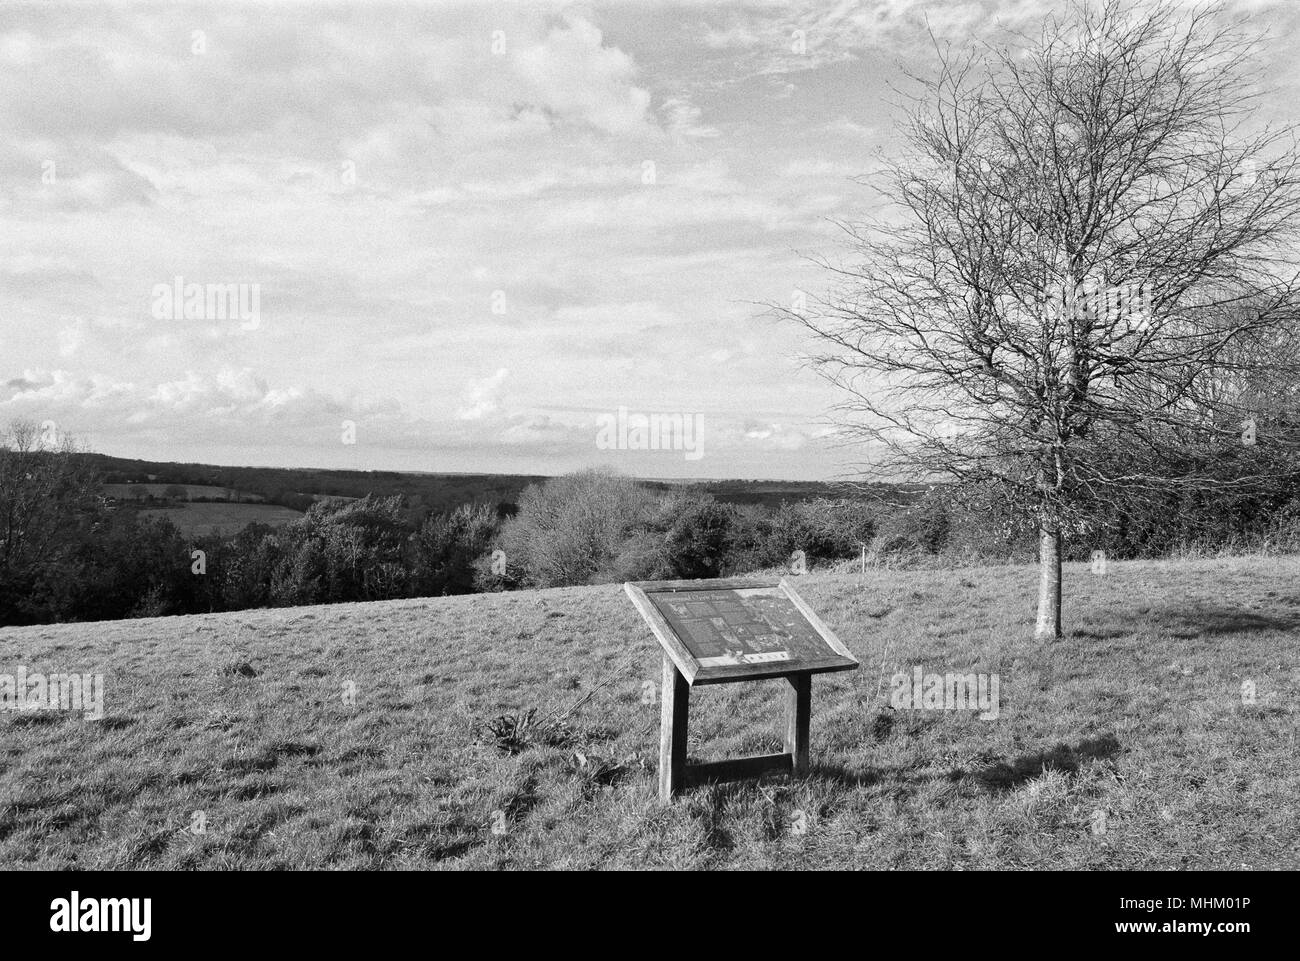 Countryside at Kingsmead open space at Battle, near Hastings, East Sussex, UK - Stock Image